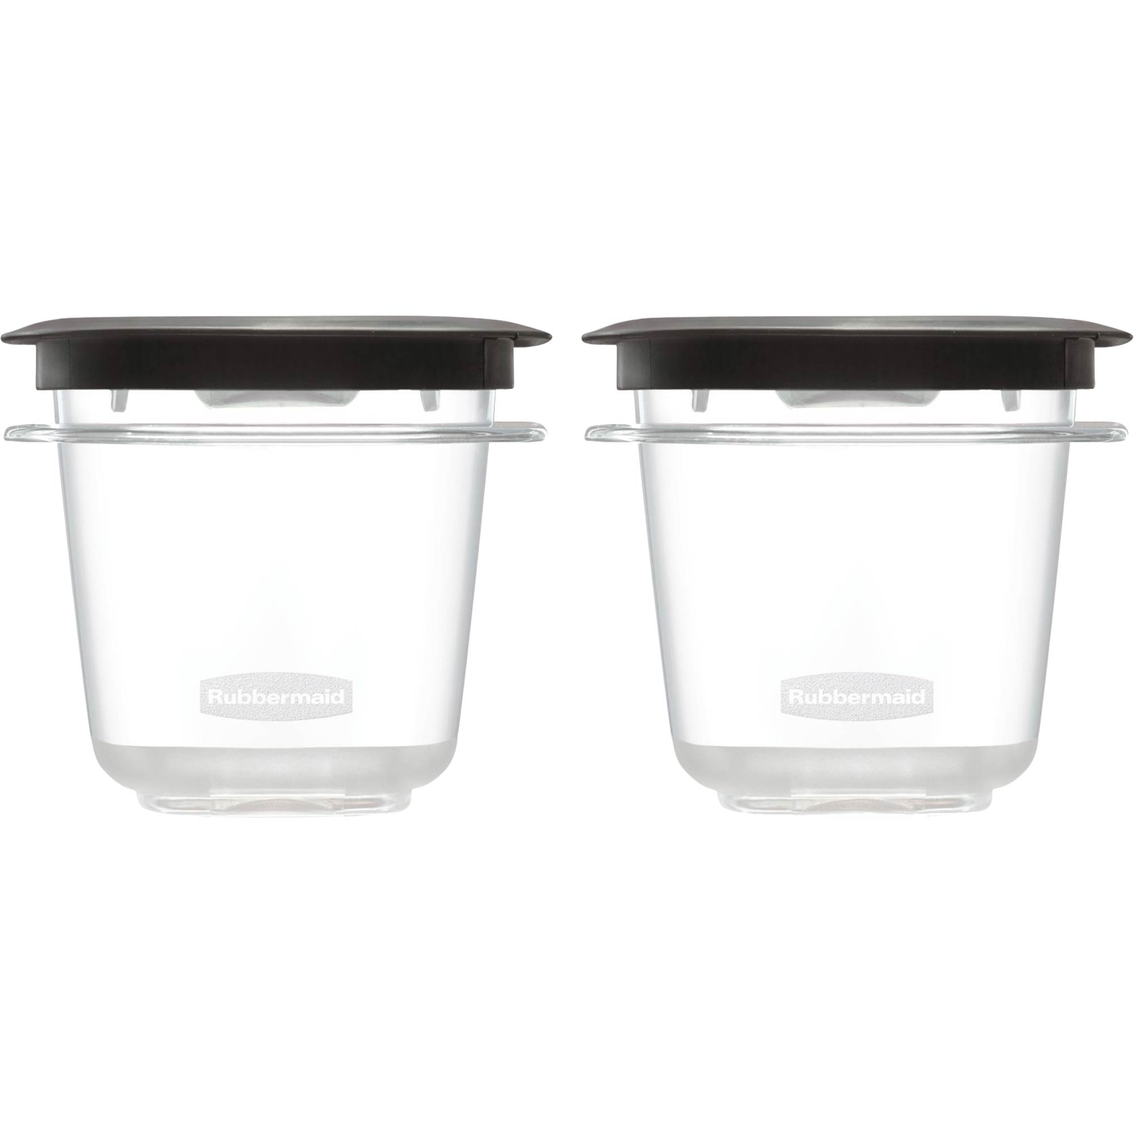 Rubbermaid Premier 05 Cup Food Storage Container 2 Pk Food